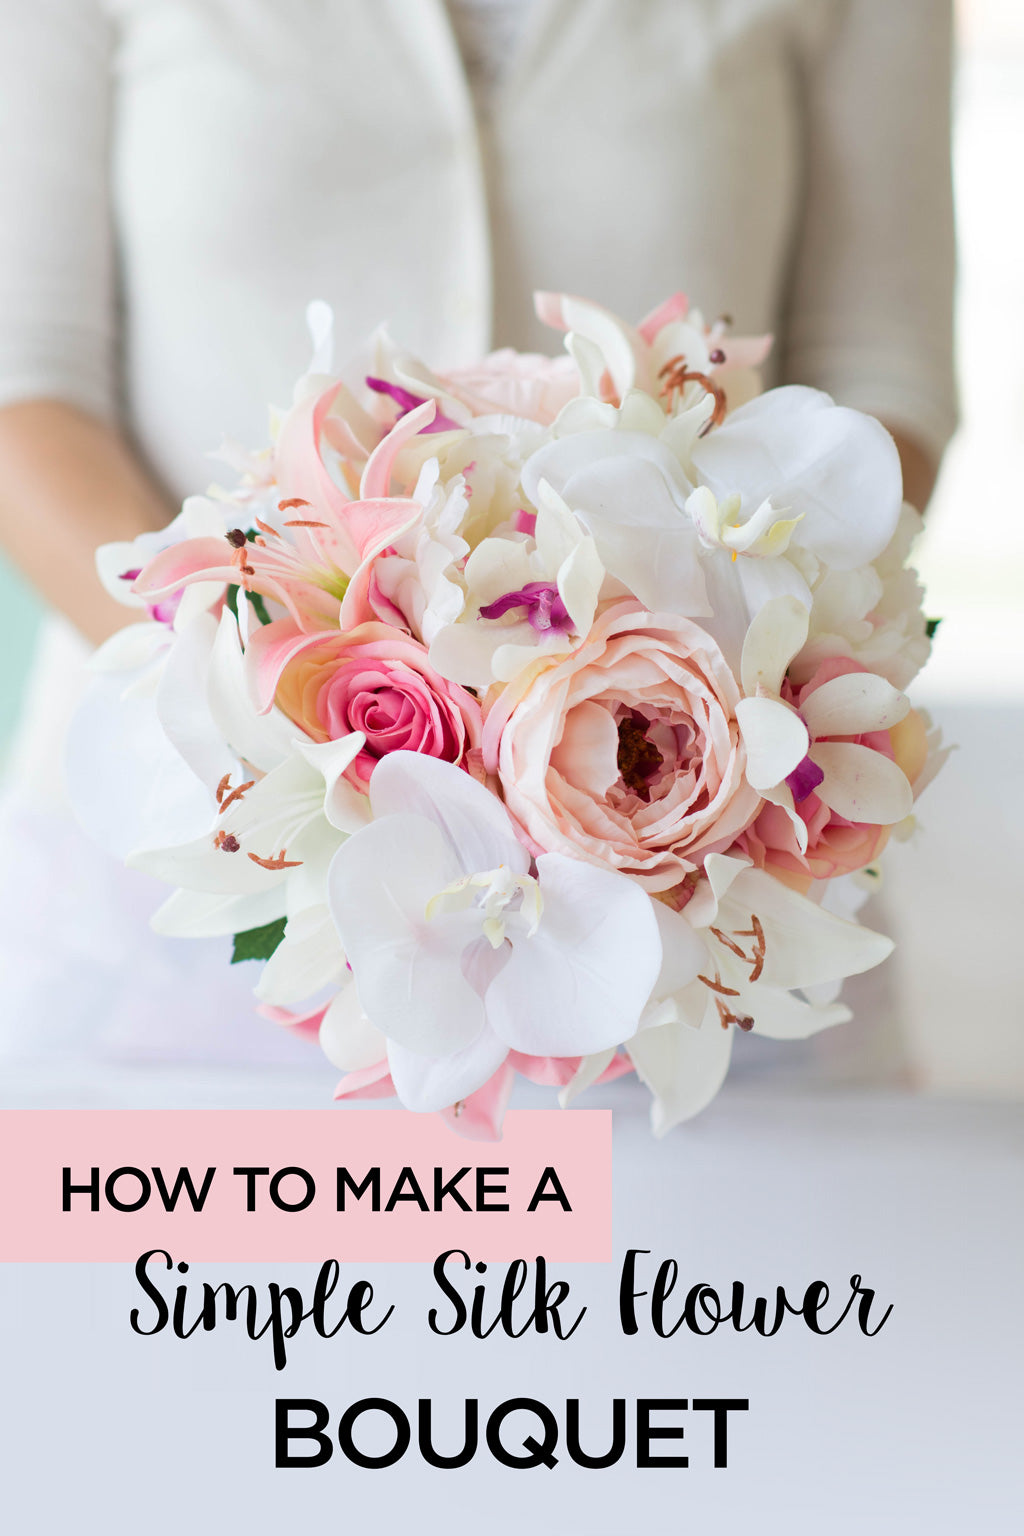 How To Make A Simple Silk Flower Bouquet